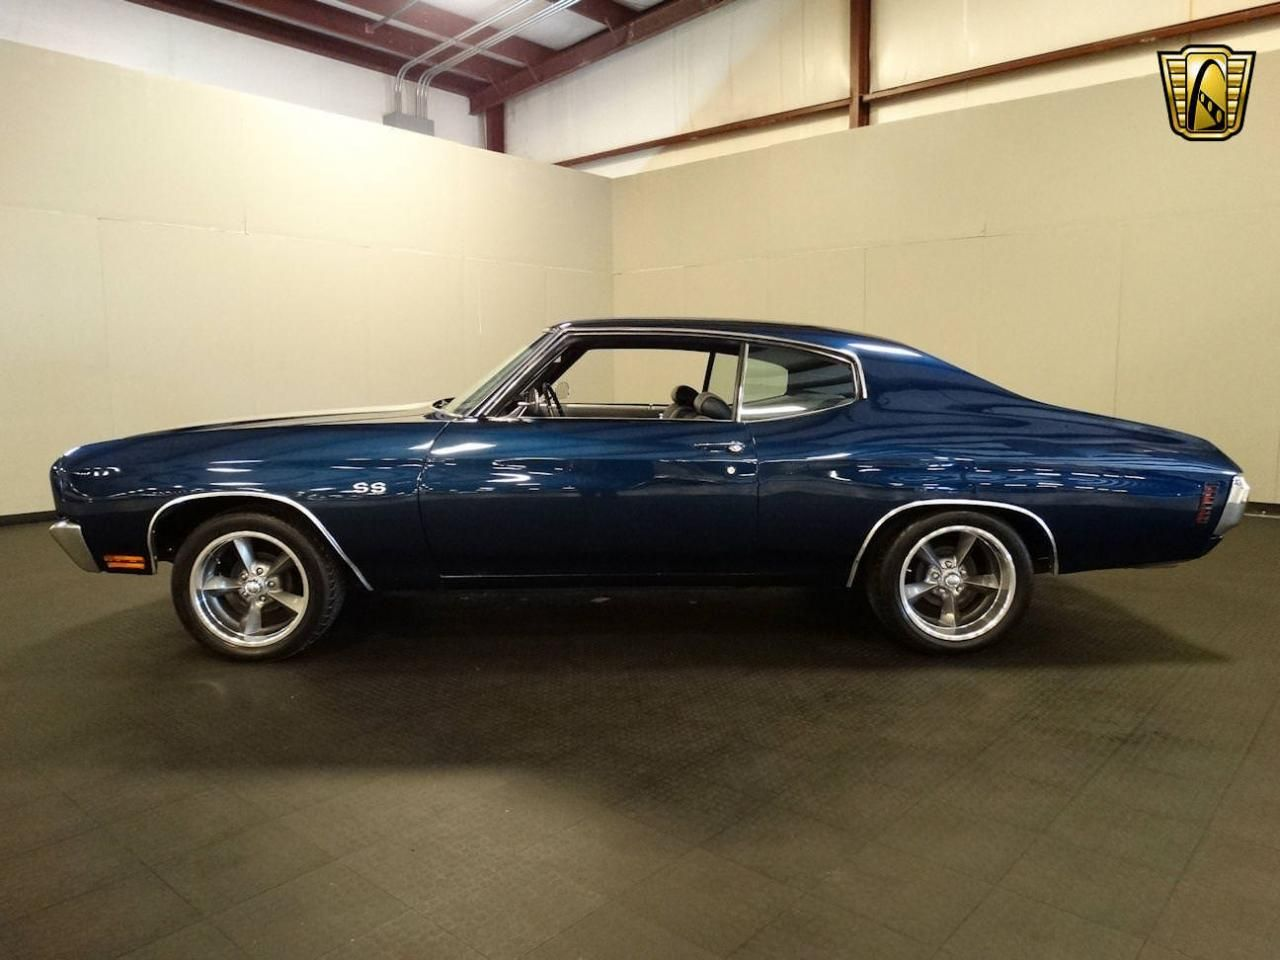 For sale in our louisville kentucky showroom is a navy blue 1970 chevrolet chevelle 350